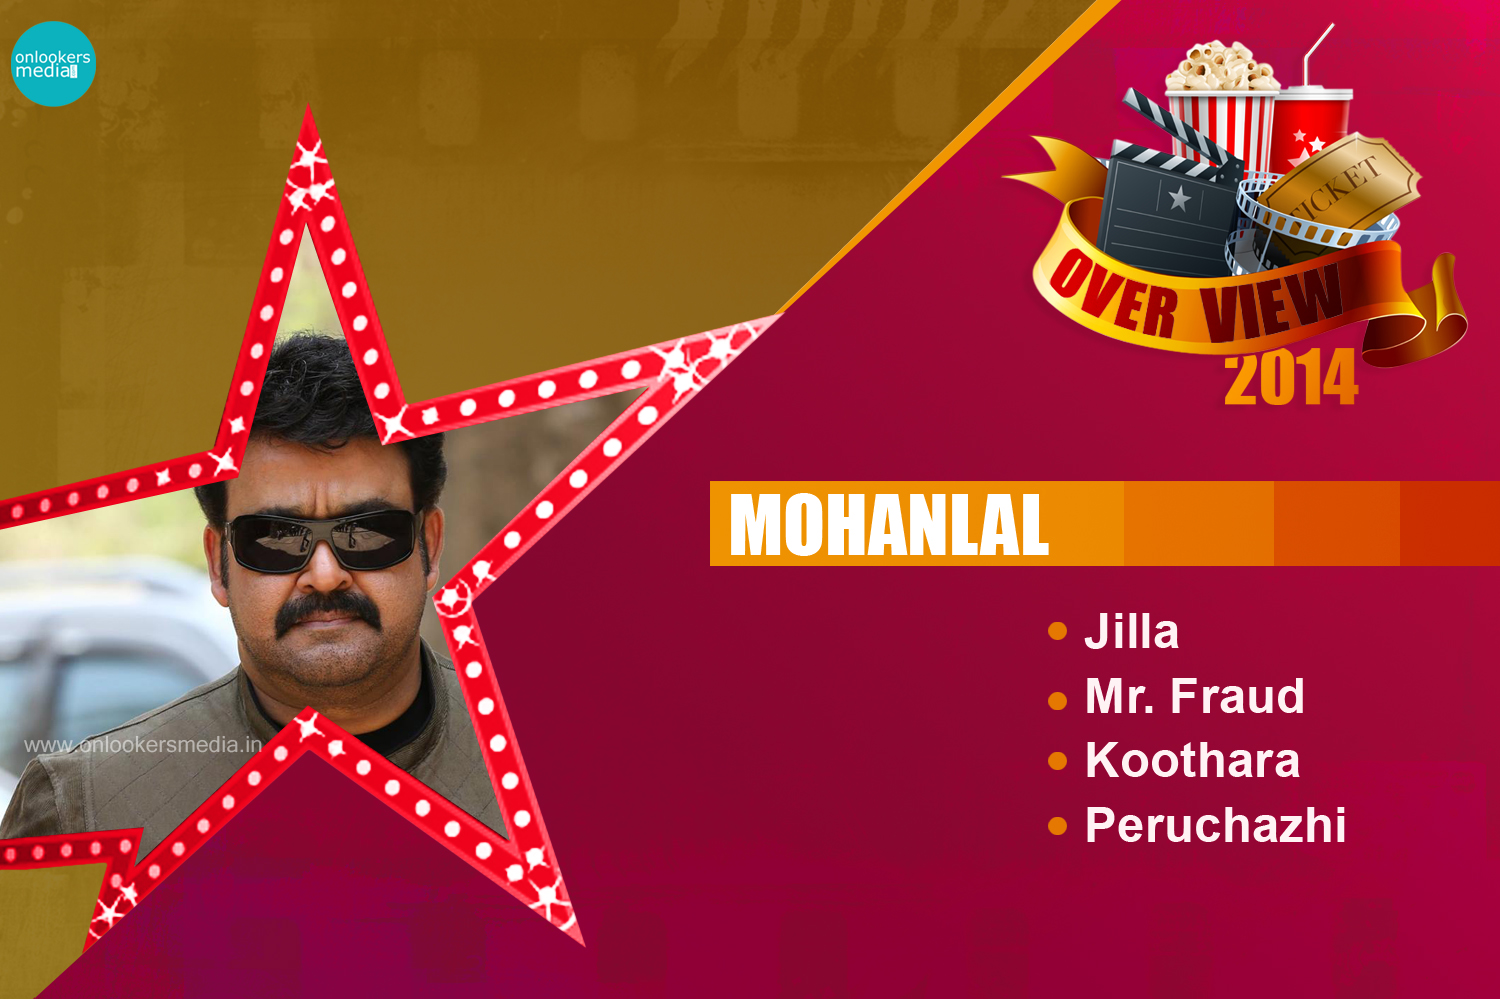 Mohanlal 2014 Overview-Hit-Flop Movies-Jilla-Mr.Fraud-Koothara-Peruchazhi-Onlookers Media